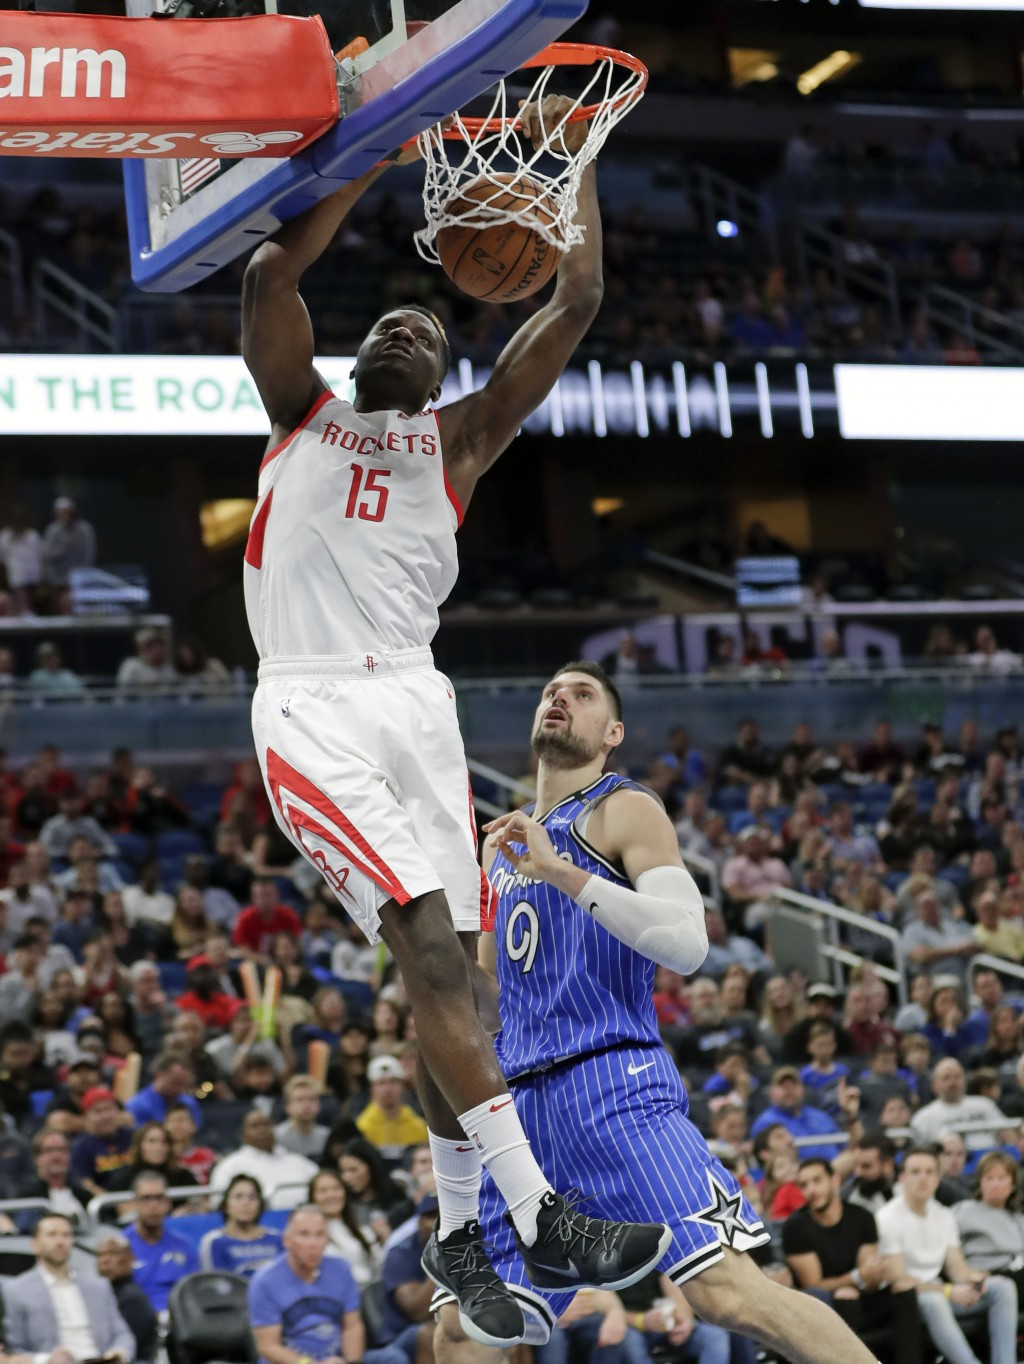 Houston Rockets' Clint Capela (15) dunks over Orlando Magic's Nikola Vucevic (9) during the first half of an NBA basketball game, Sunday, Jan. 13, 201